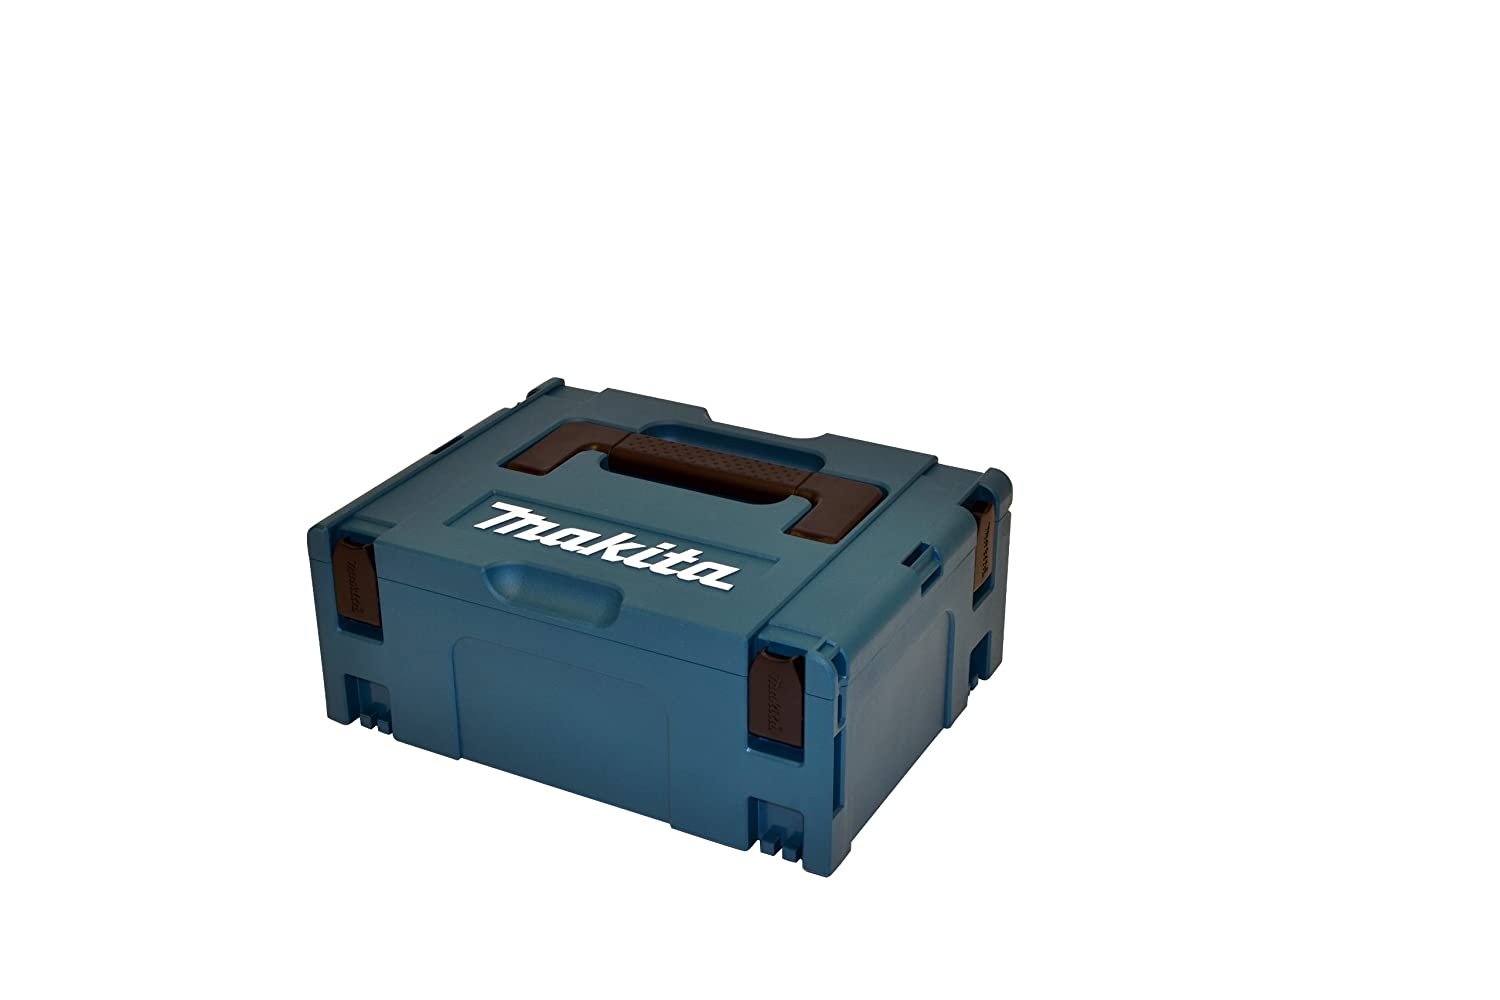 Makita DGA452RMJ 18 V Li-ion LXT 115 mm Angle Grinder Complete with 2 x 4.0 Ah Li-ion Batteries and Charger in a Makpac Case